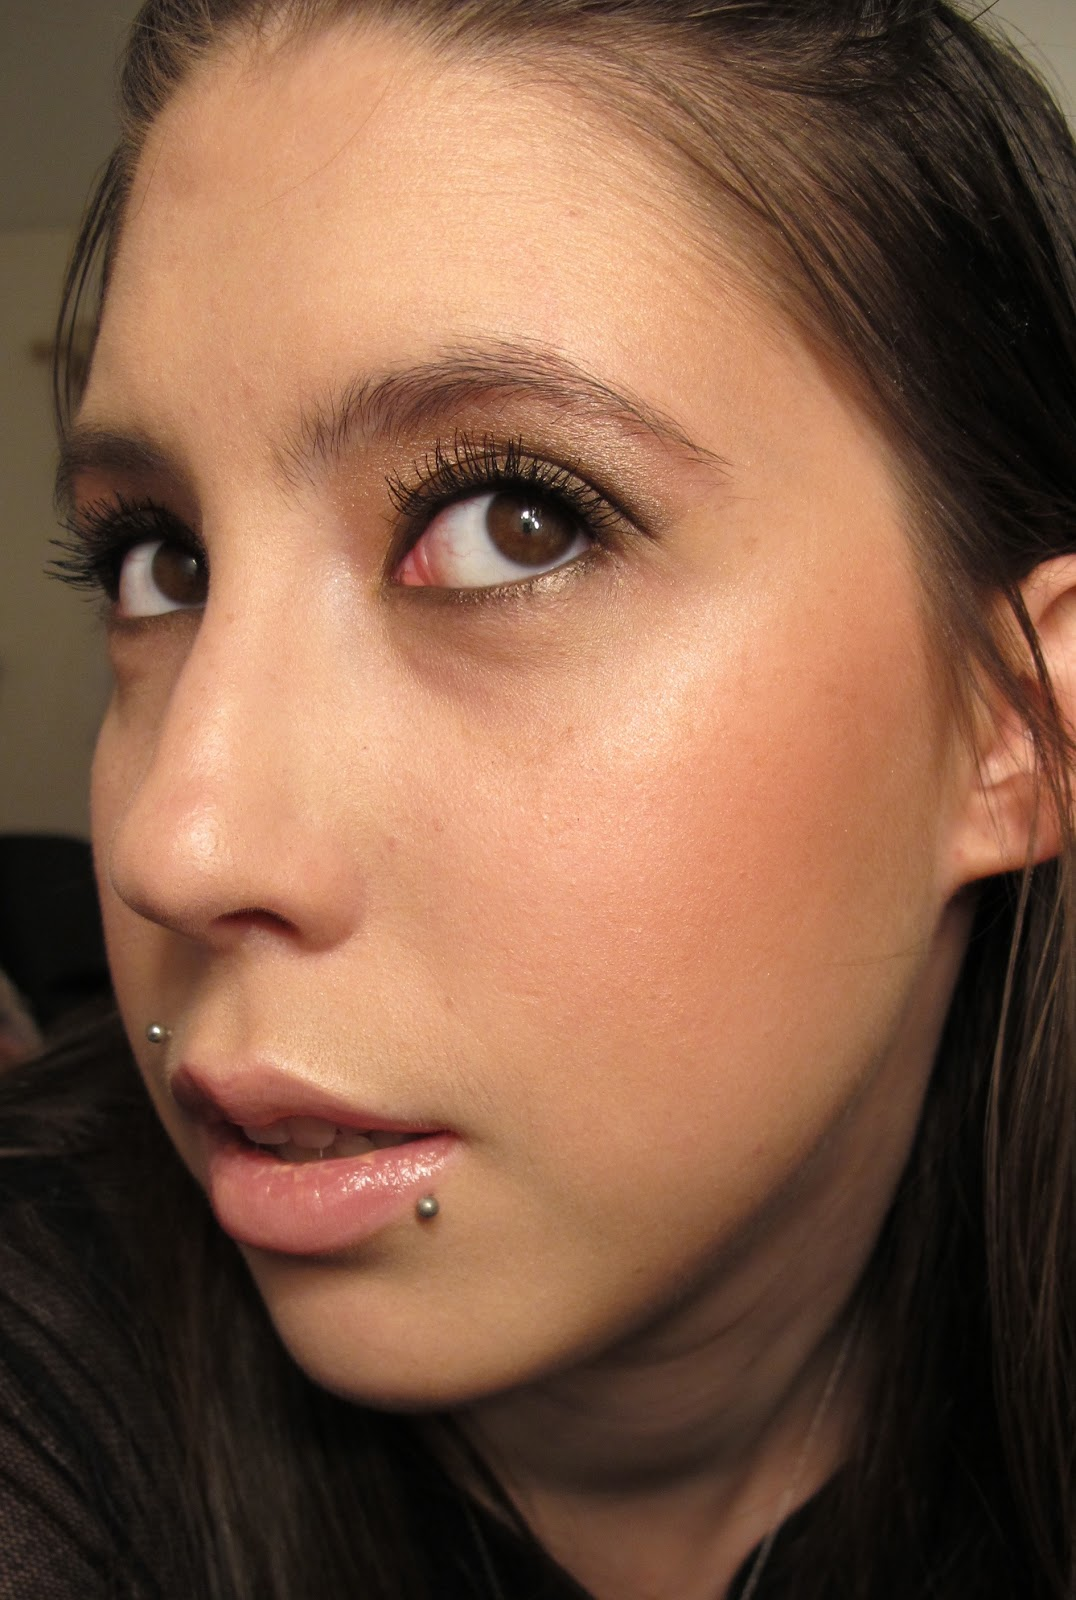 Steph Stud Makeup: Another Cut-Crease Eye using Urban